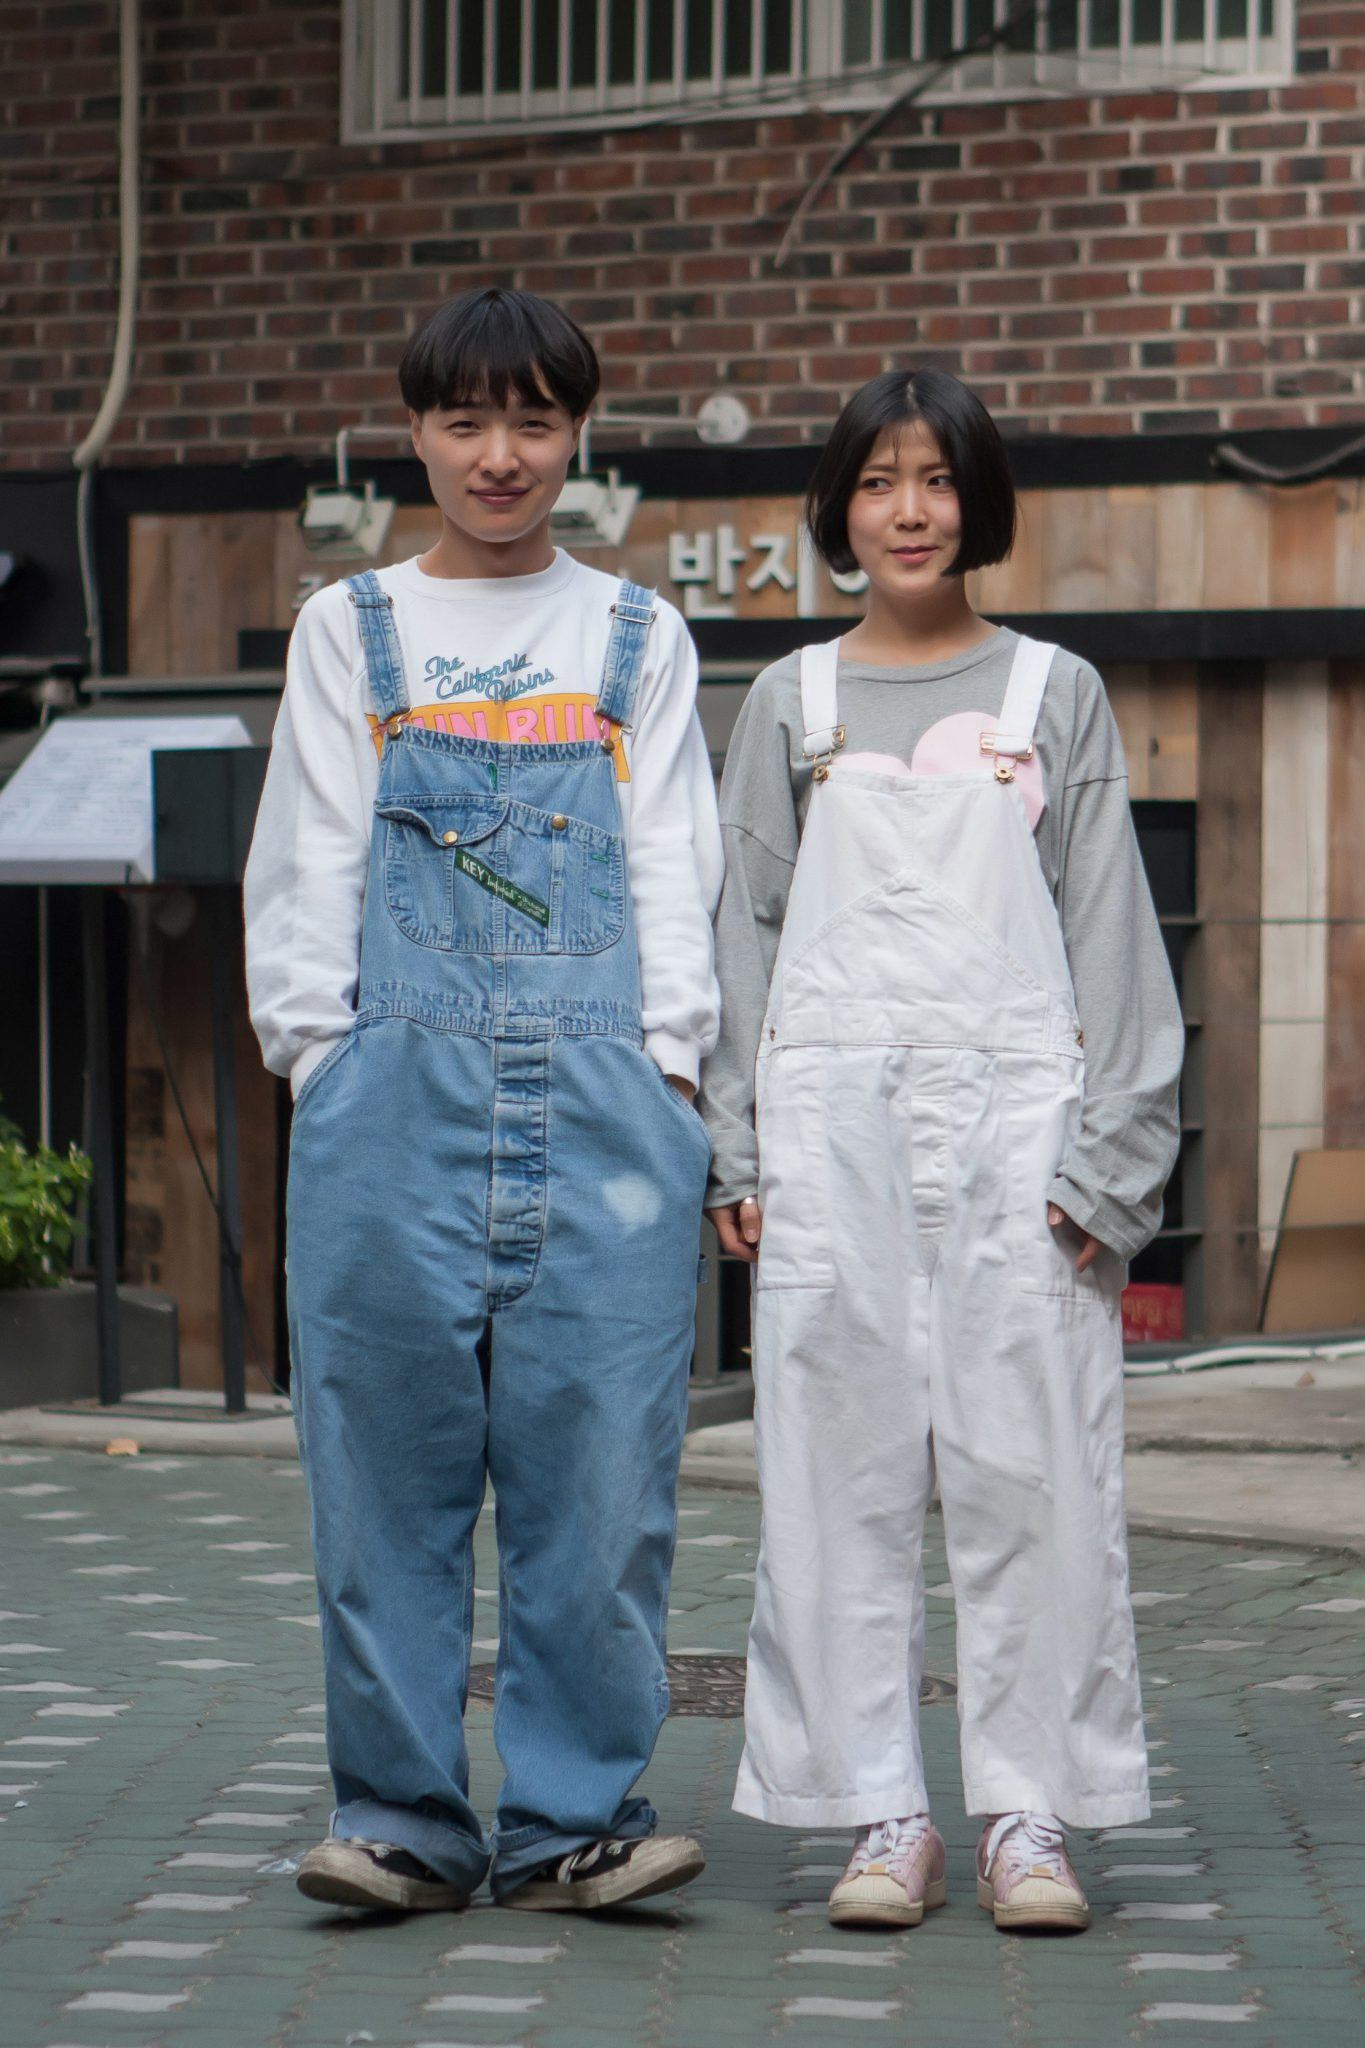 couples in south korea wear matching outfits for more than